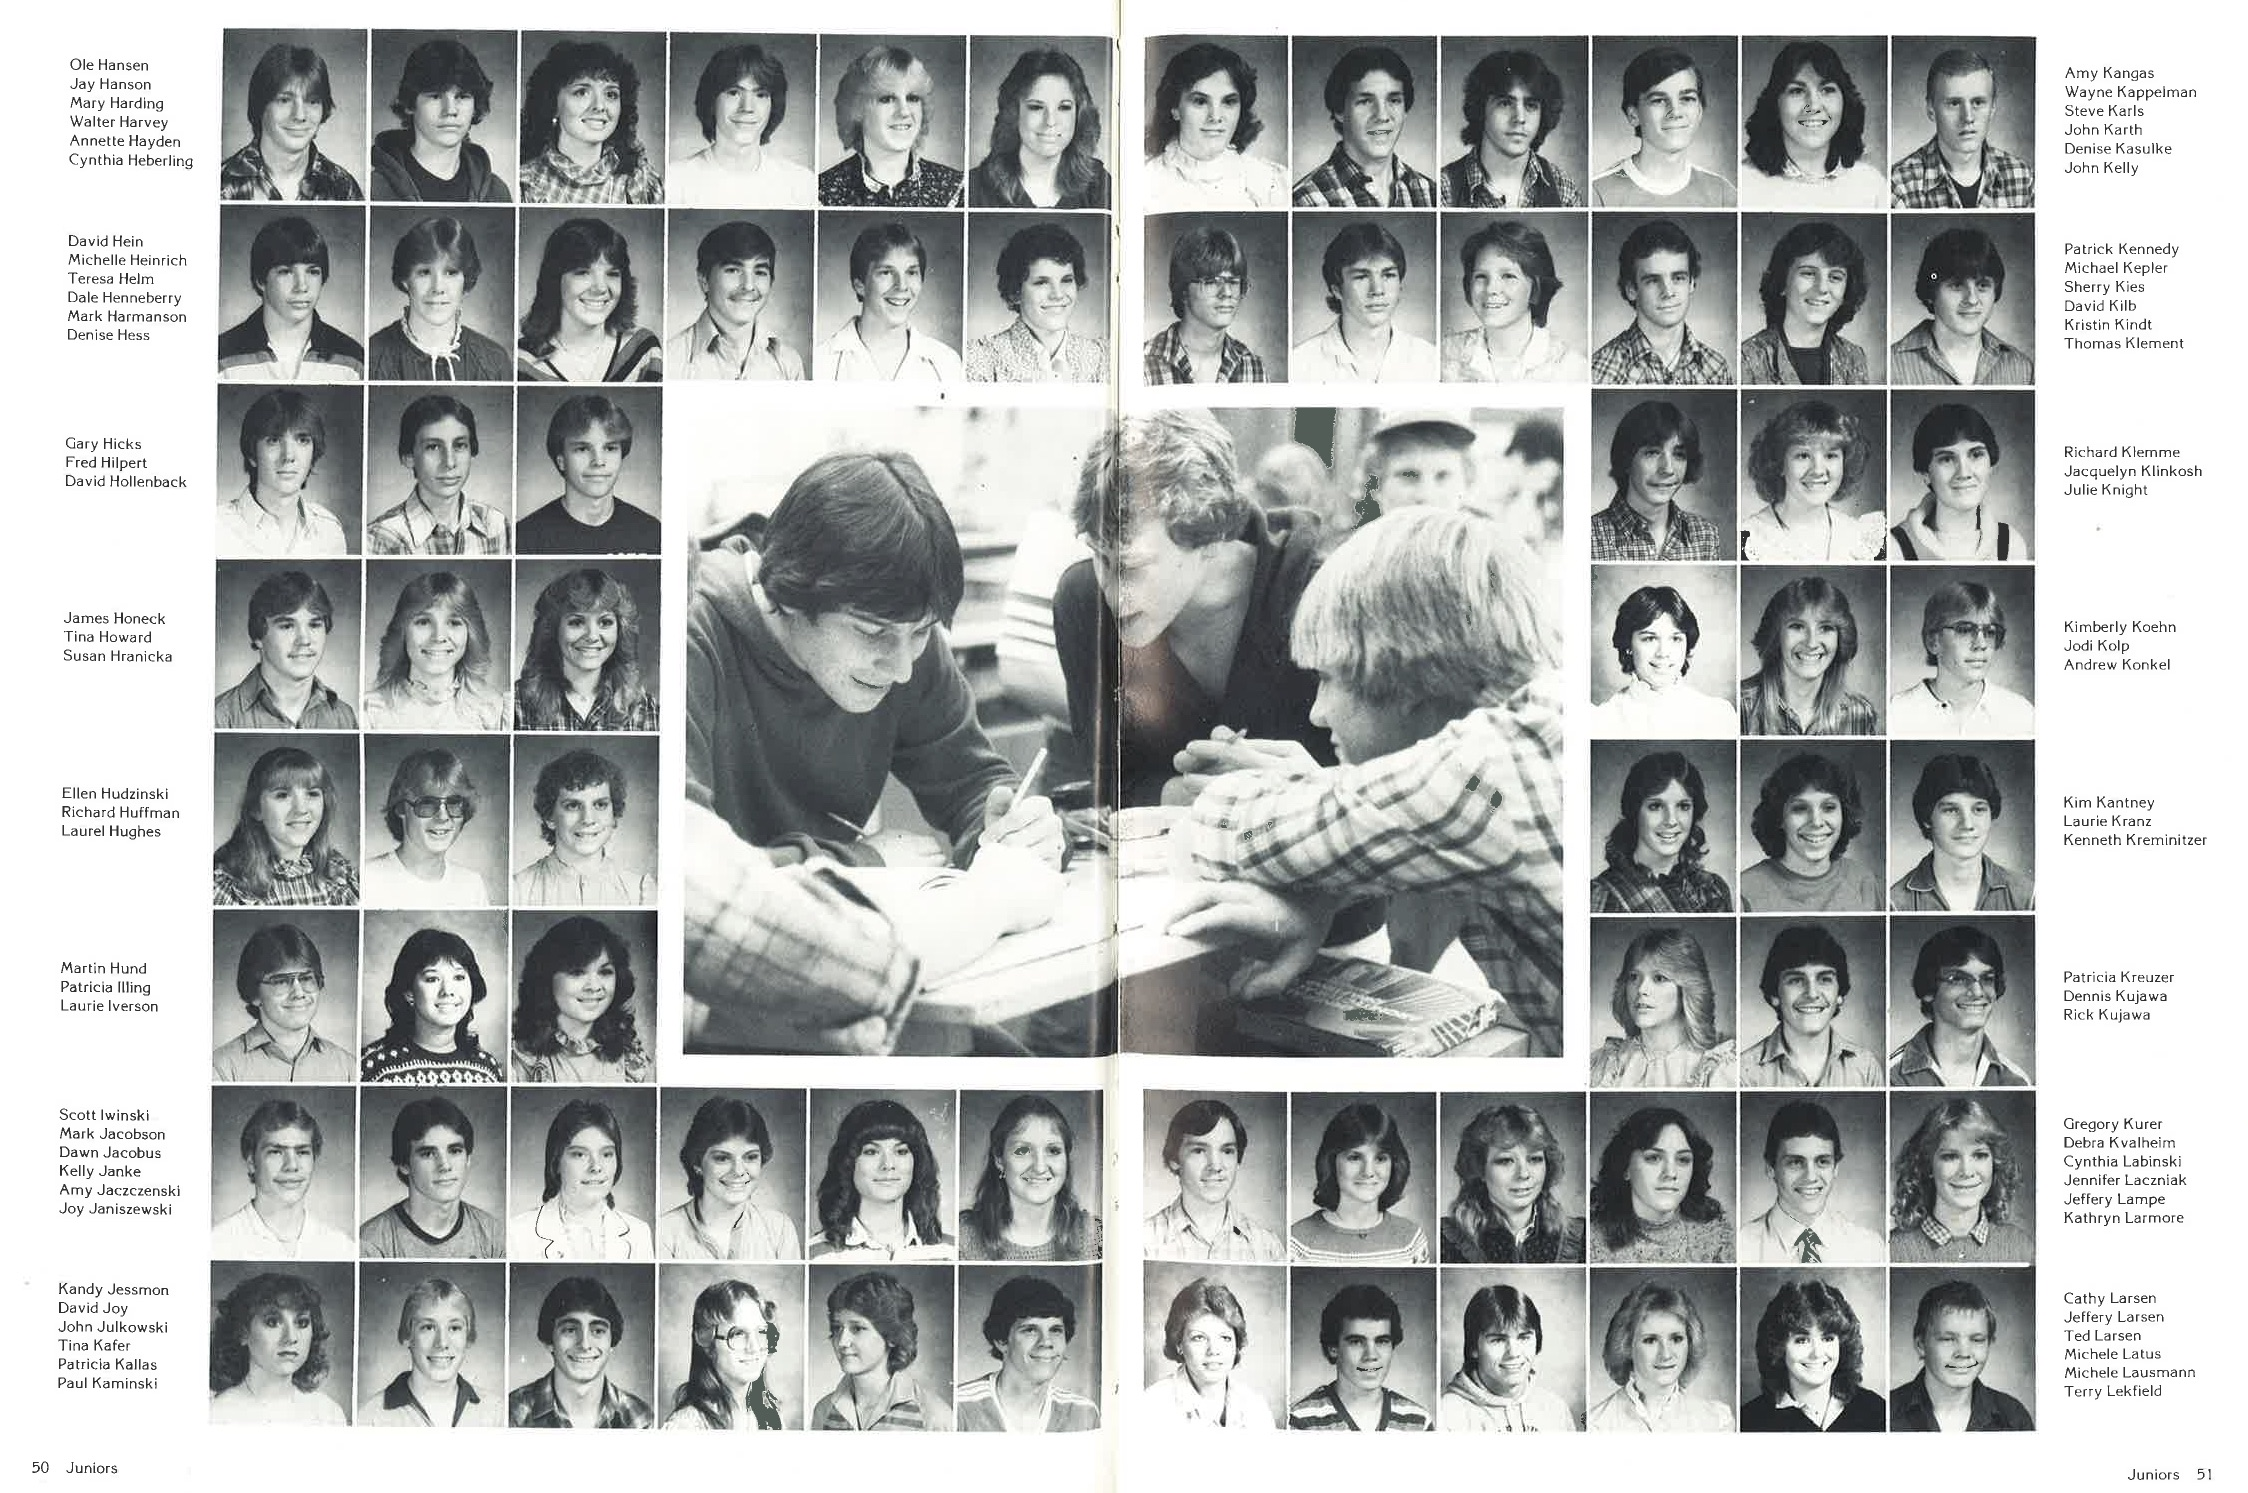 1983_Yearbook_26.jpg